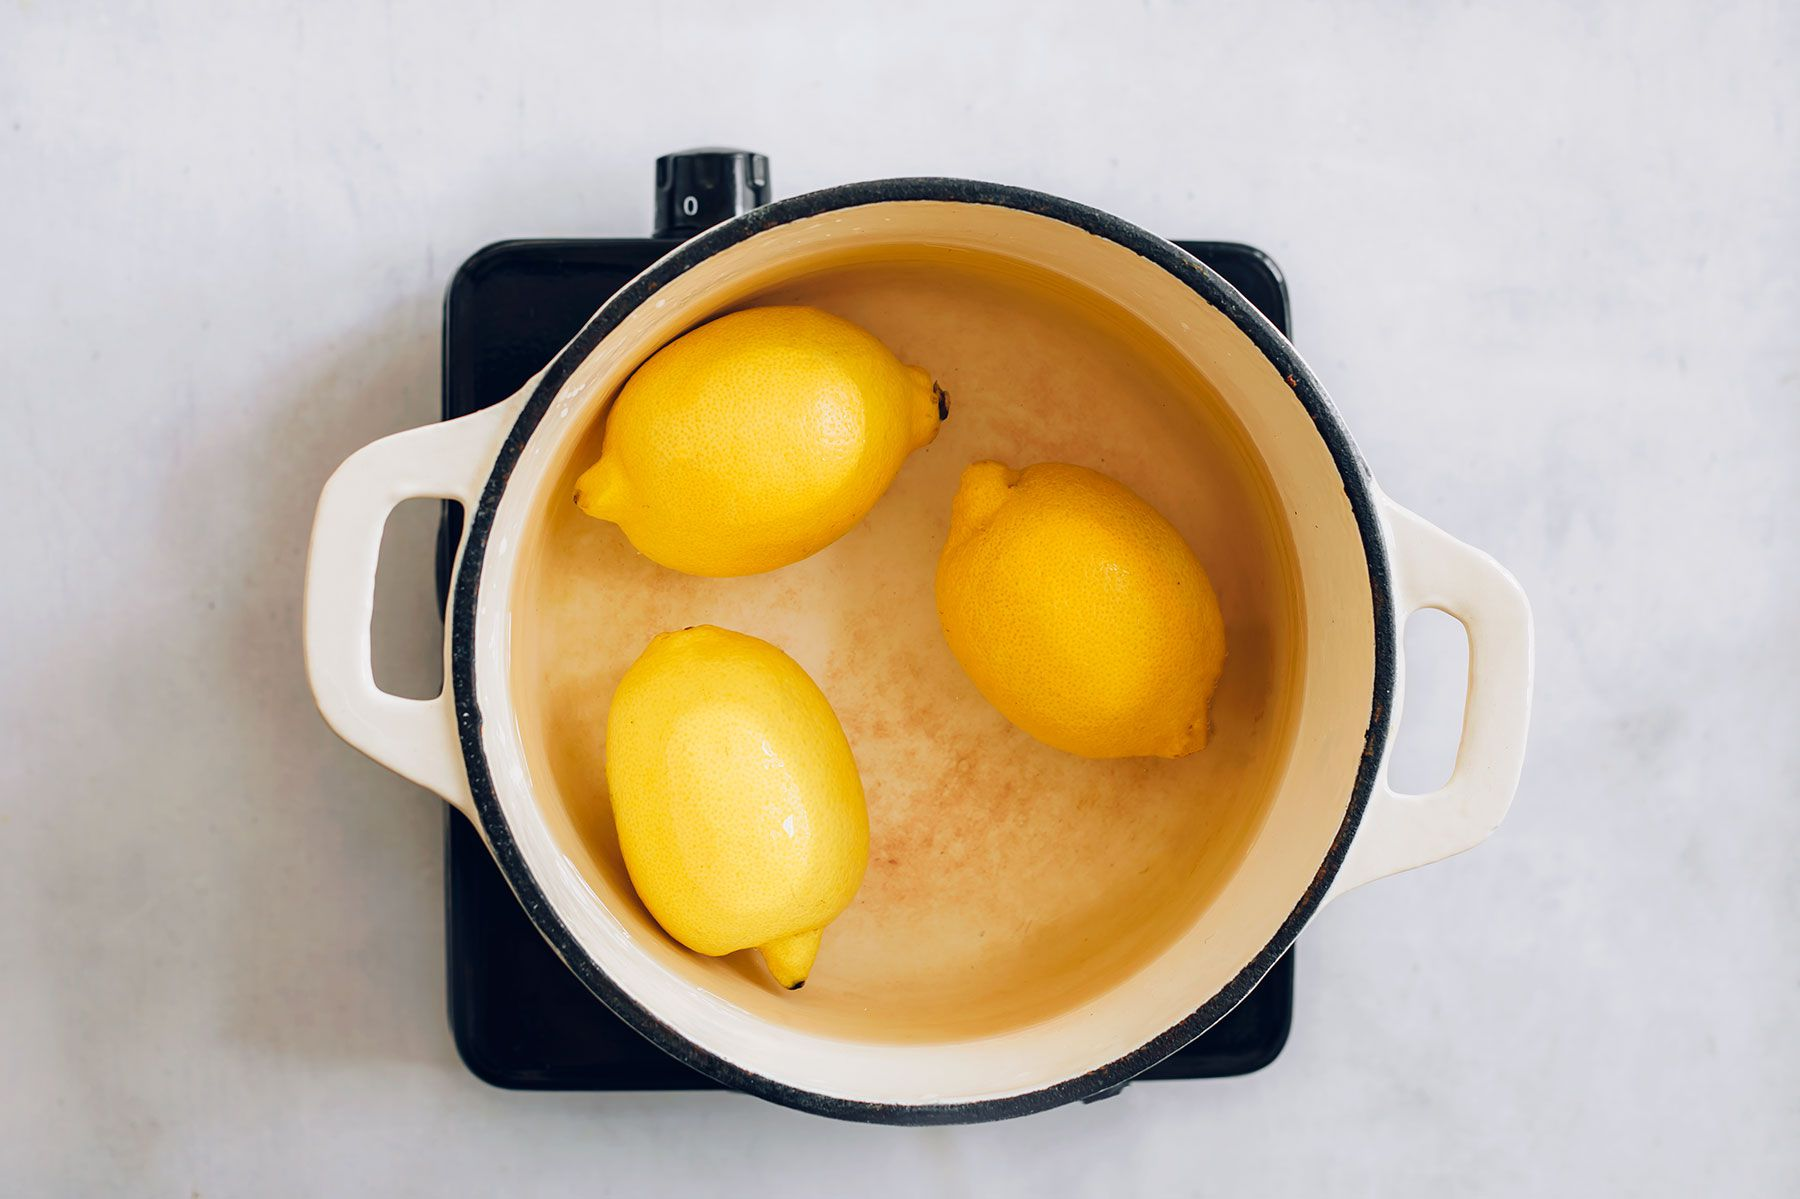 Lemons cooking in a pot of water